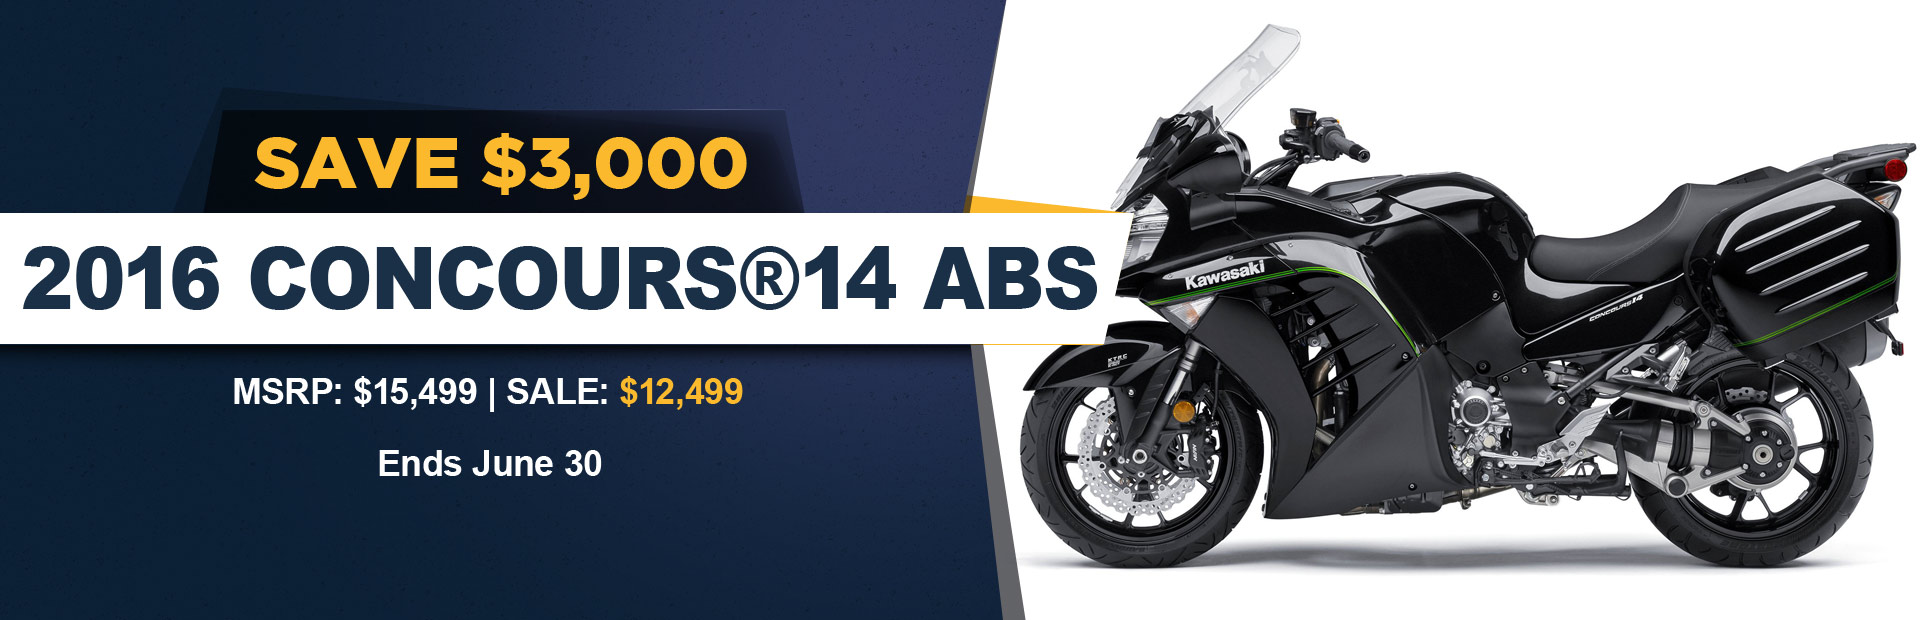 Save $3,000 on the 2016 Kawasaki Concours 14 ABS!